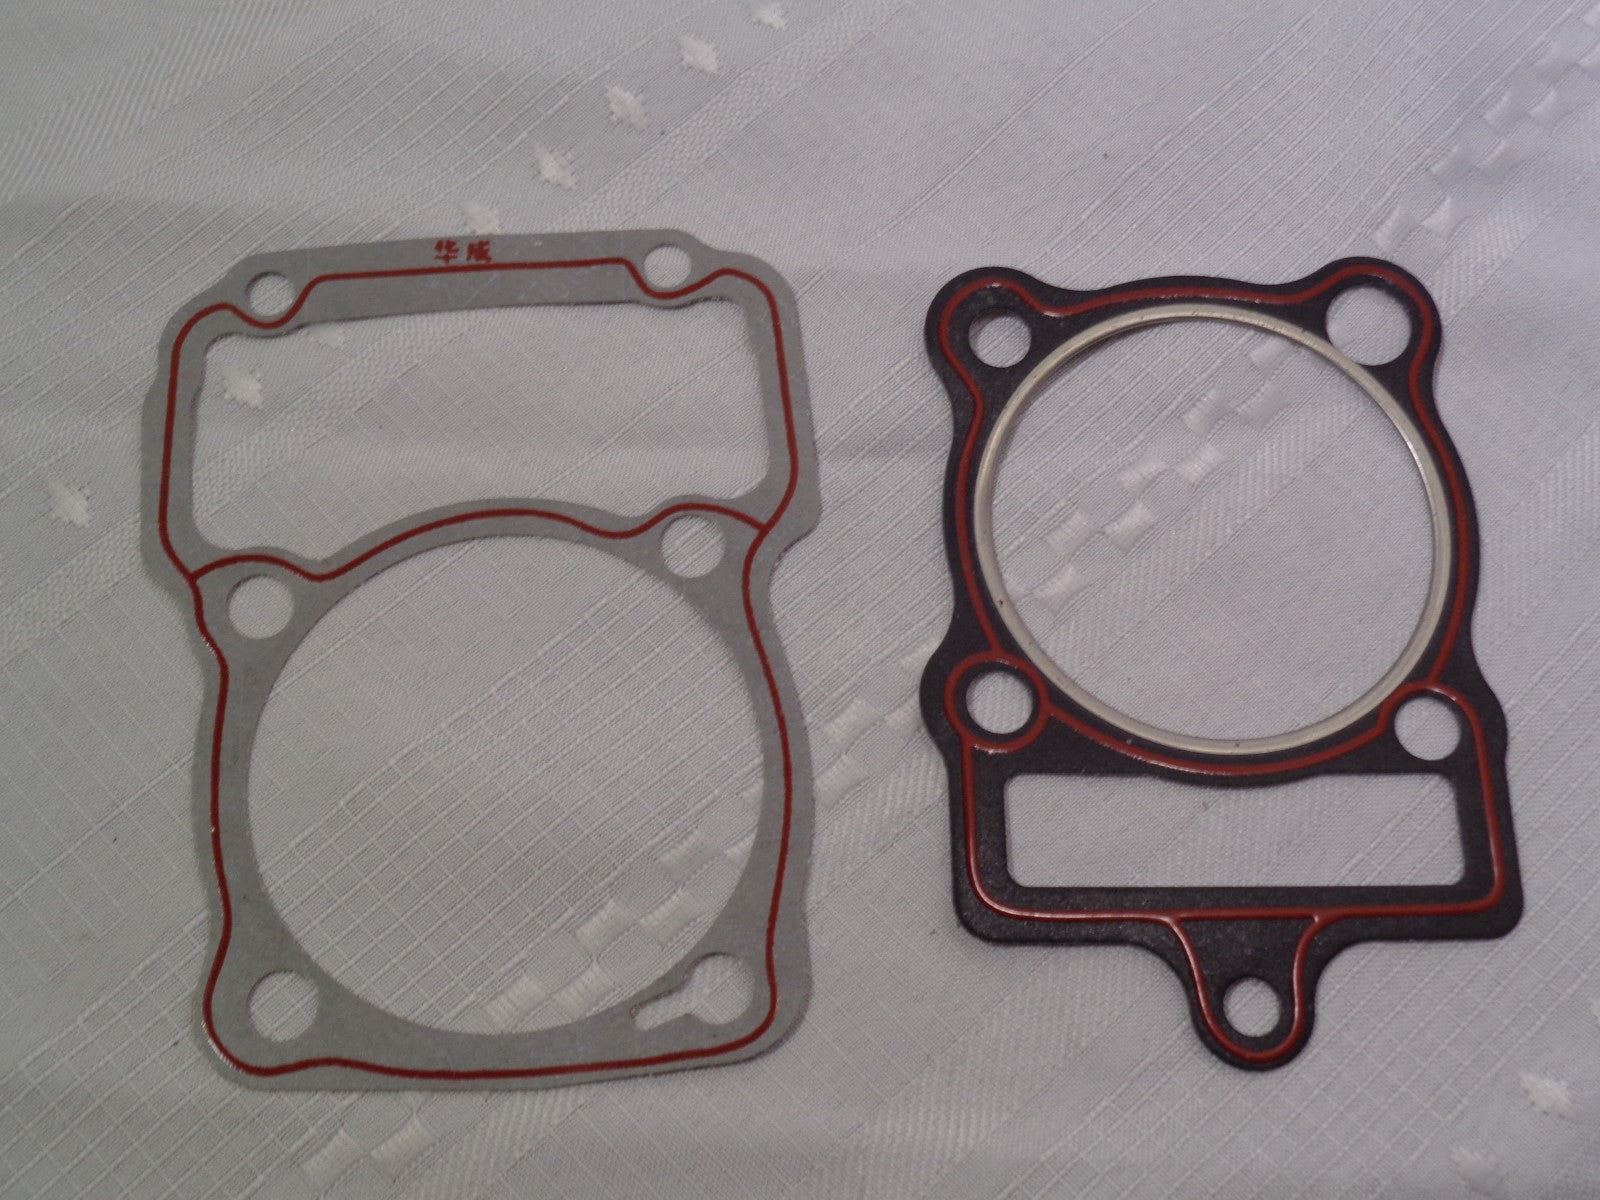 Cylinder / Head Gasket set for CG250cc Air-Cooled ATV, Dirt Bike & Go Kart